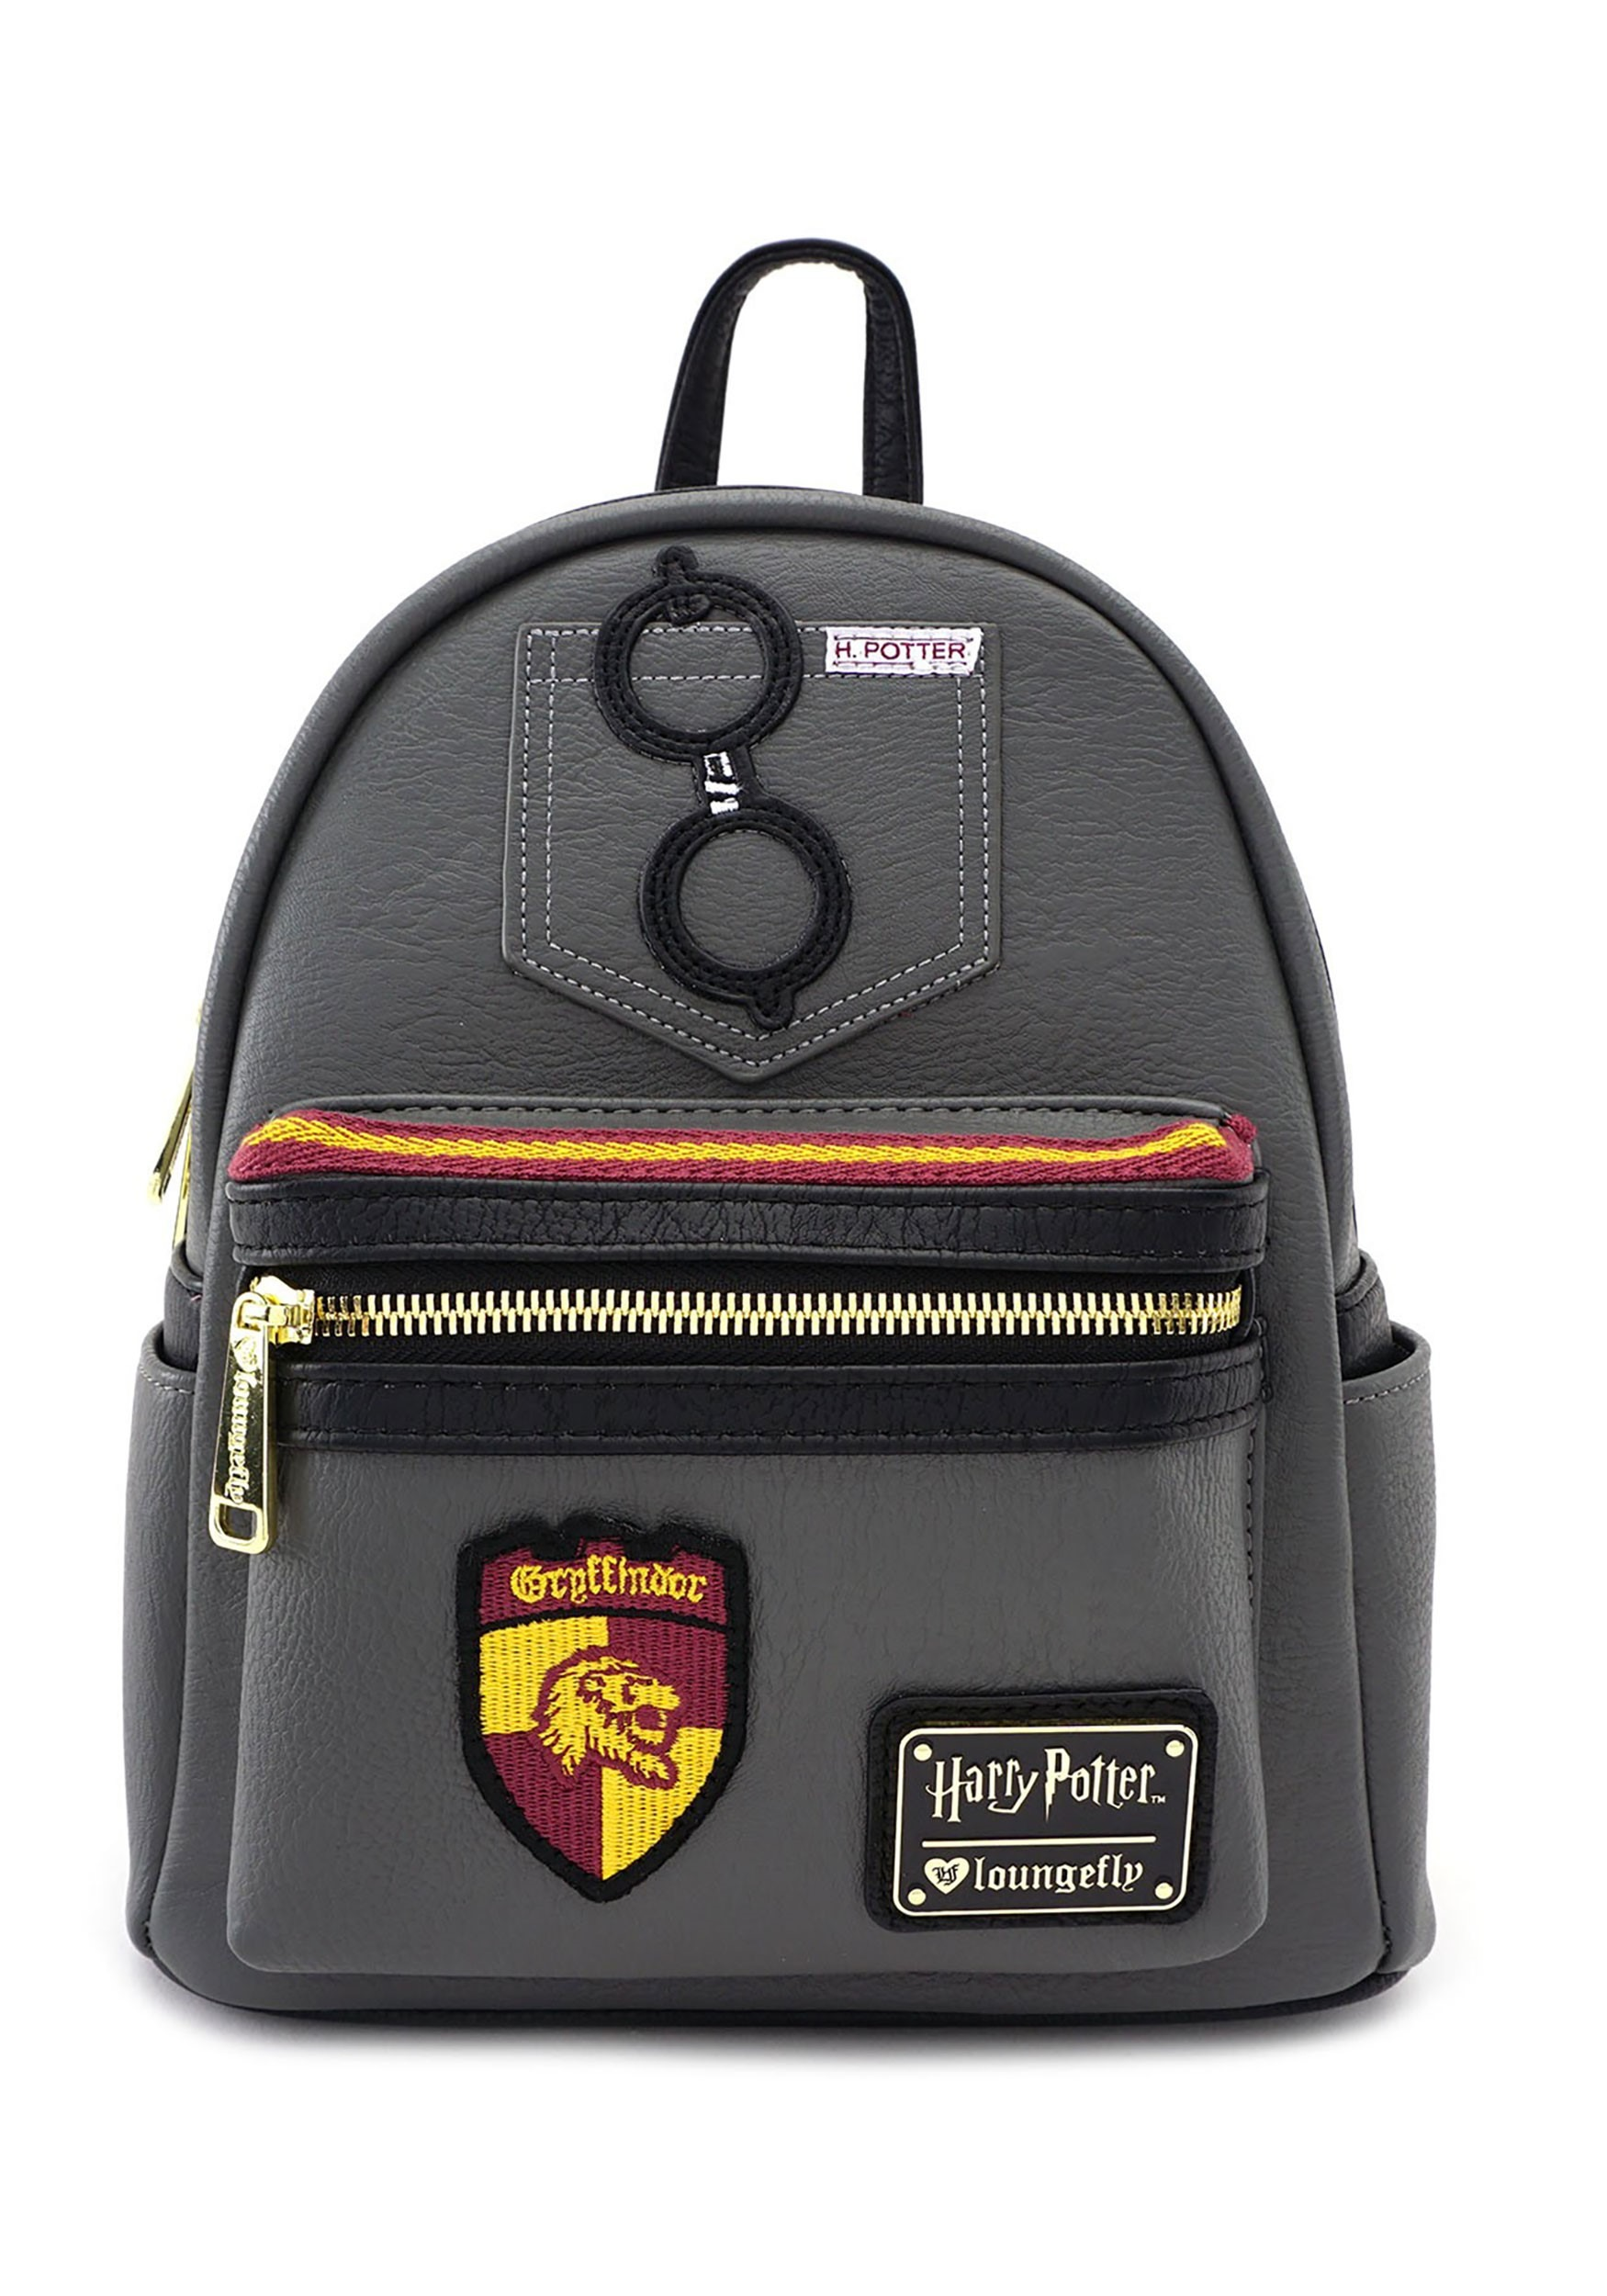 91b3c0cac49 Loungefly Harry Potter Gryffindor Faux Leather Mini Backpack